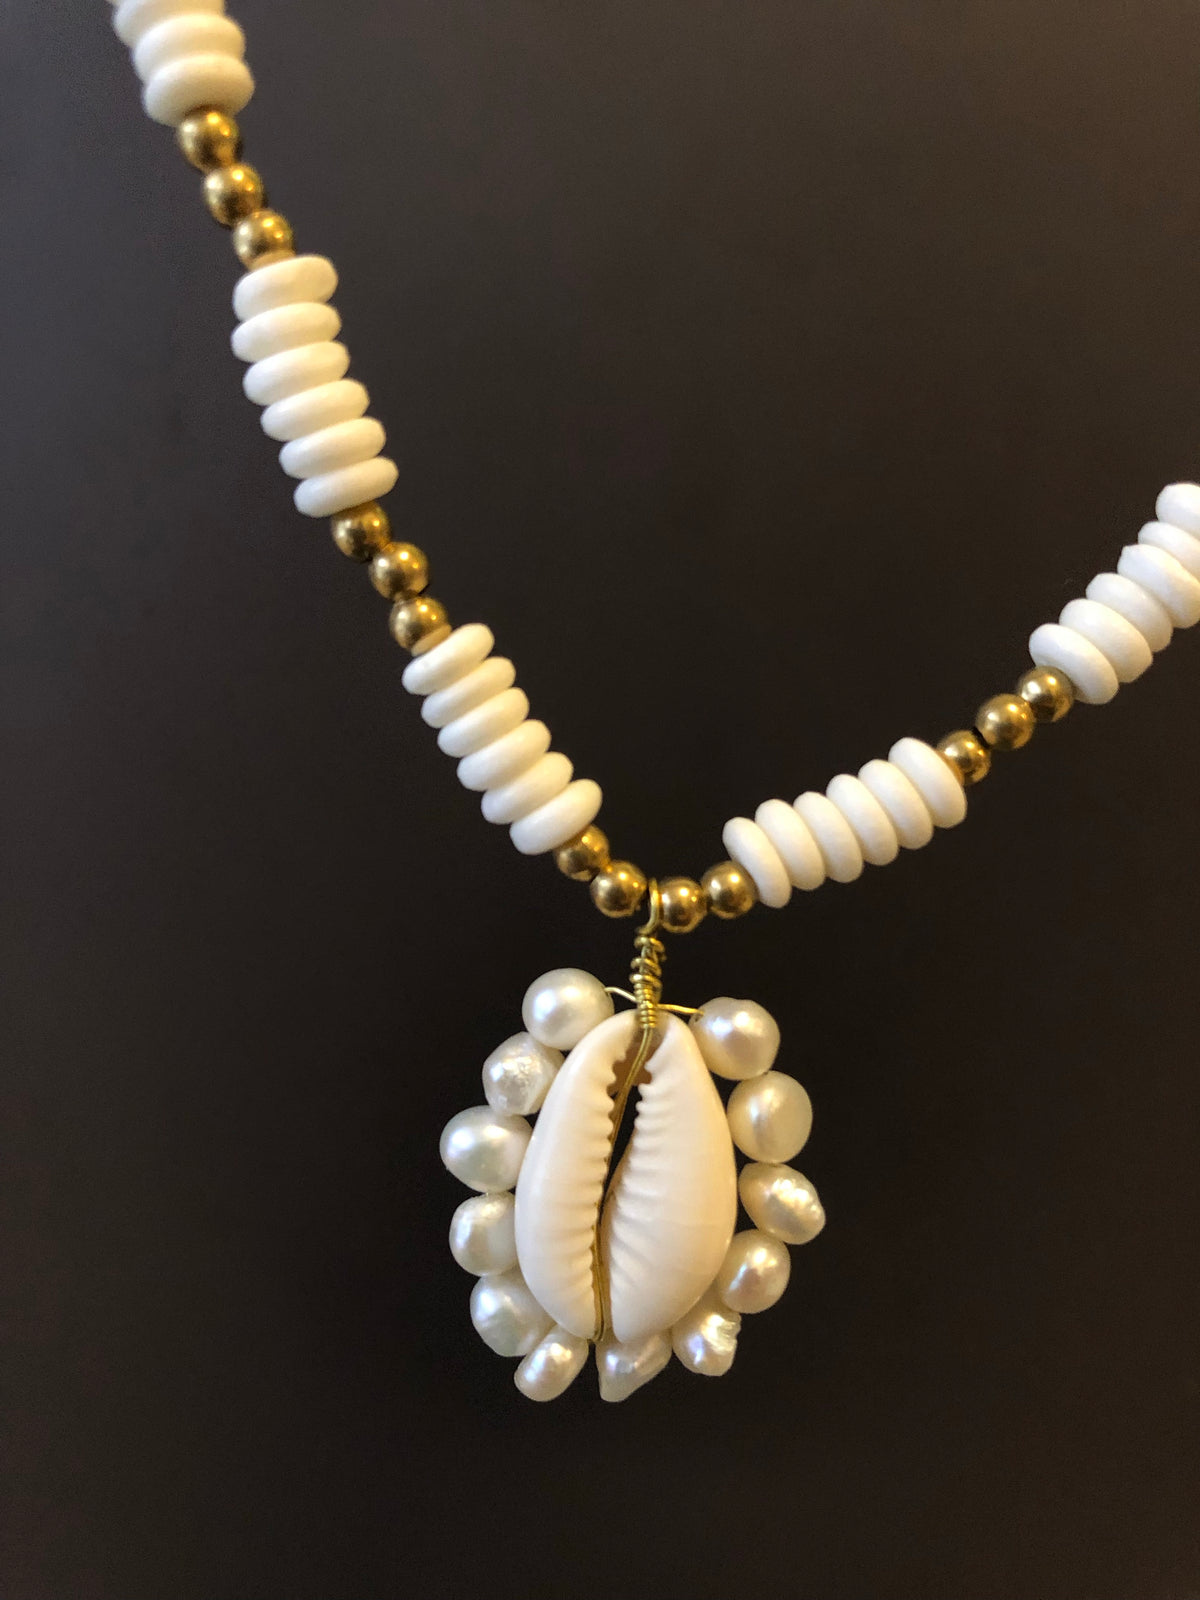 Ying Shell Necklace